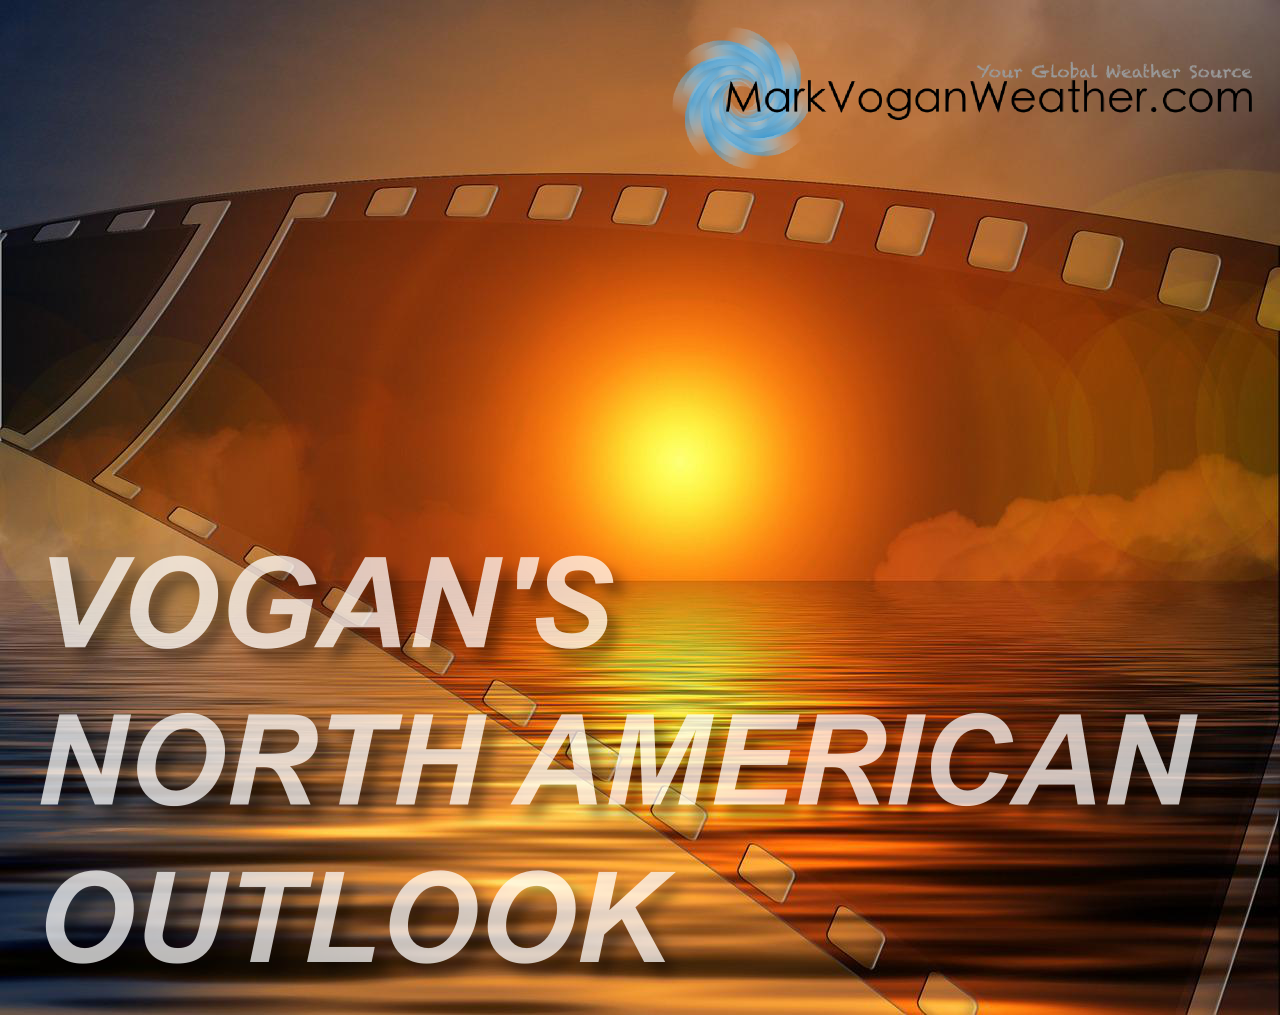 FRI 11 JUL: VOGAN'S NORTH AMERICAN OUTLOOK